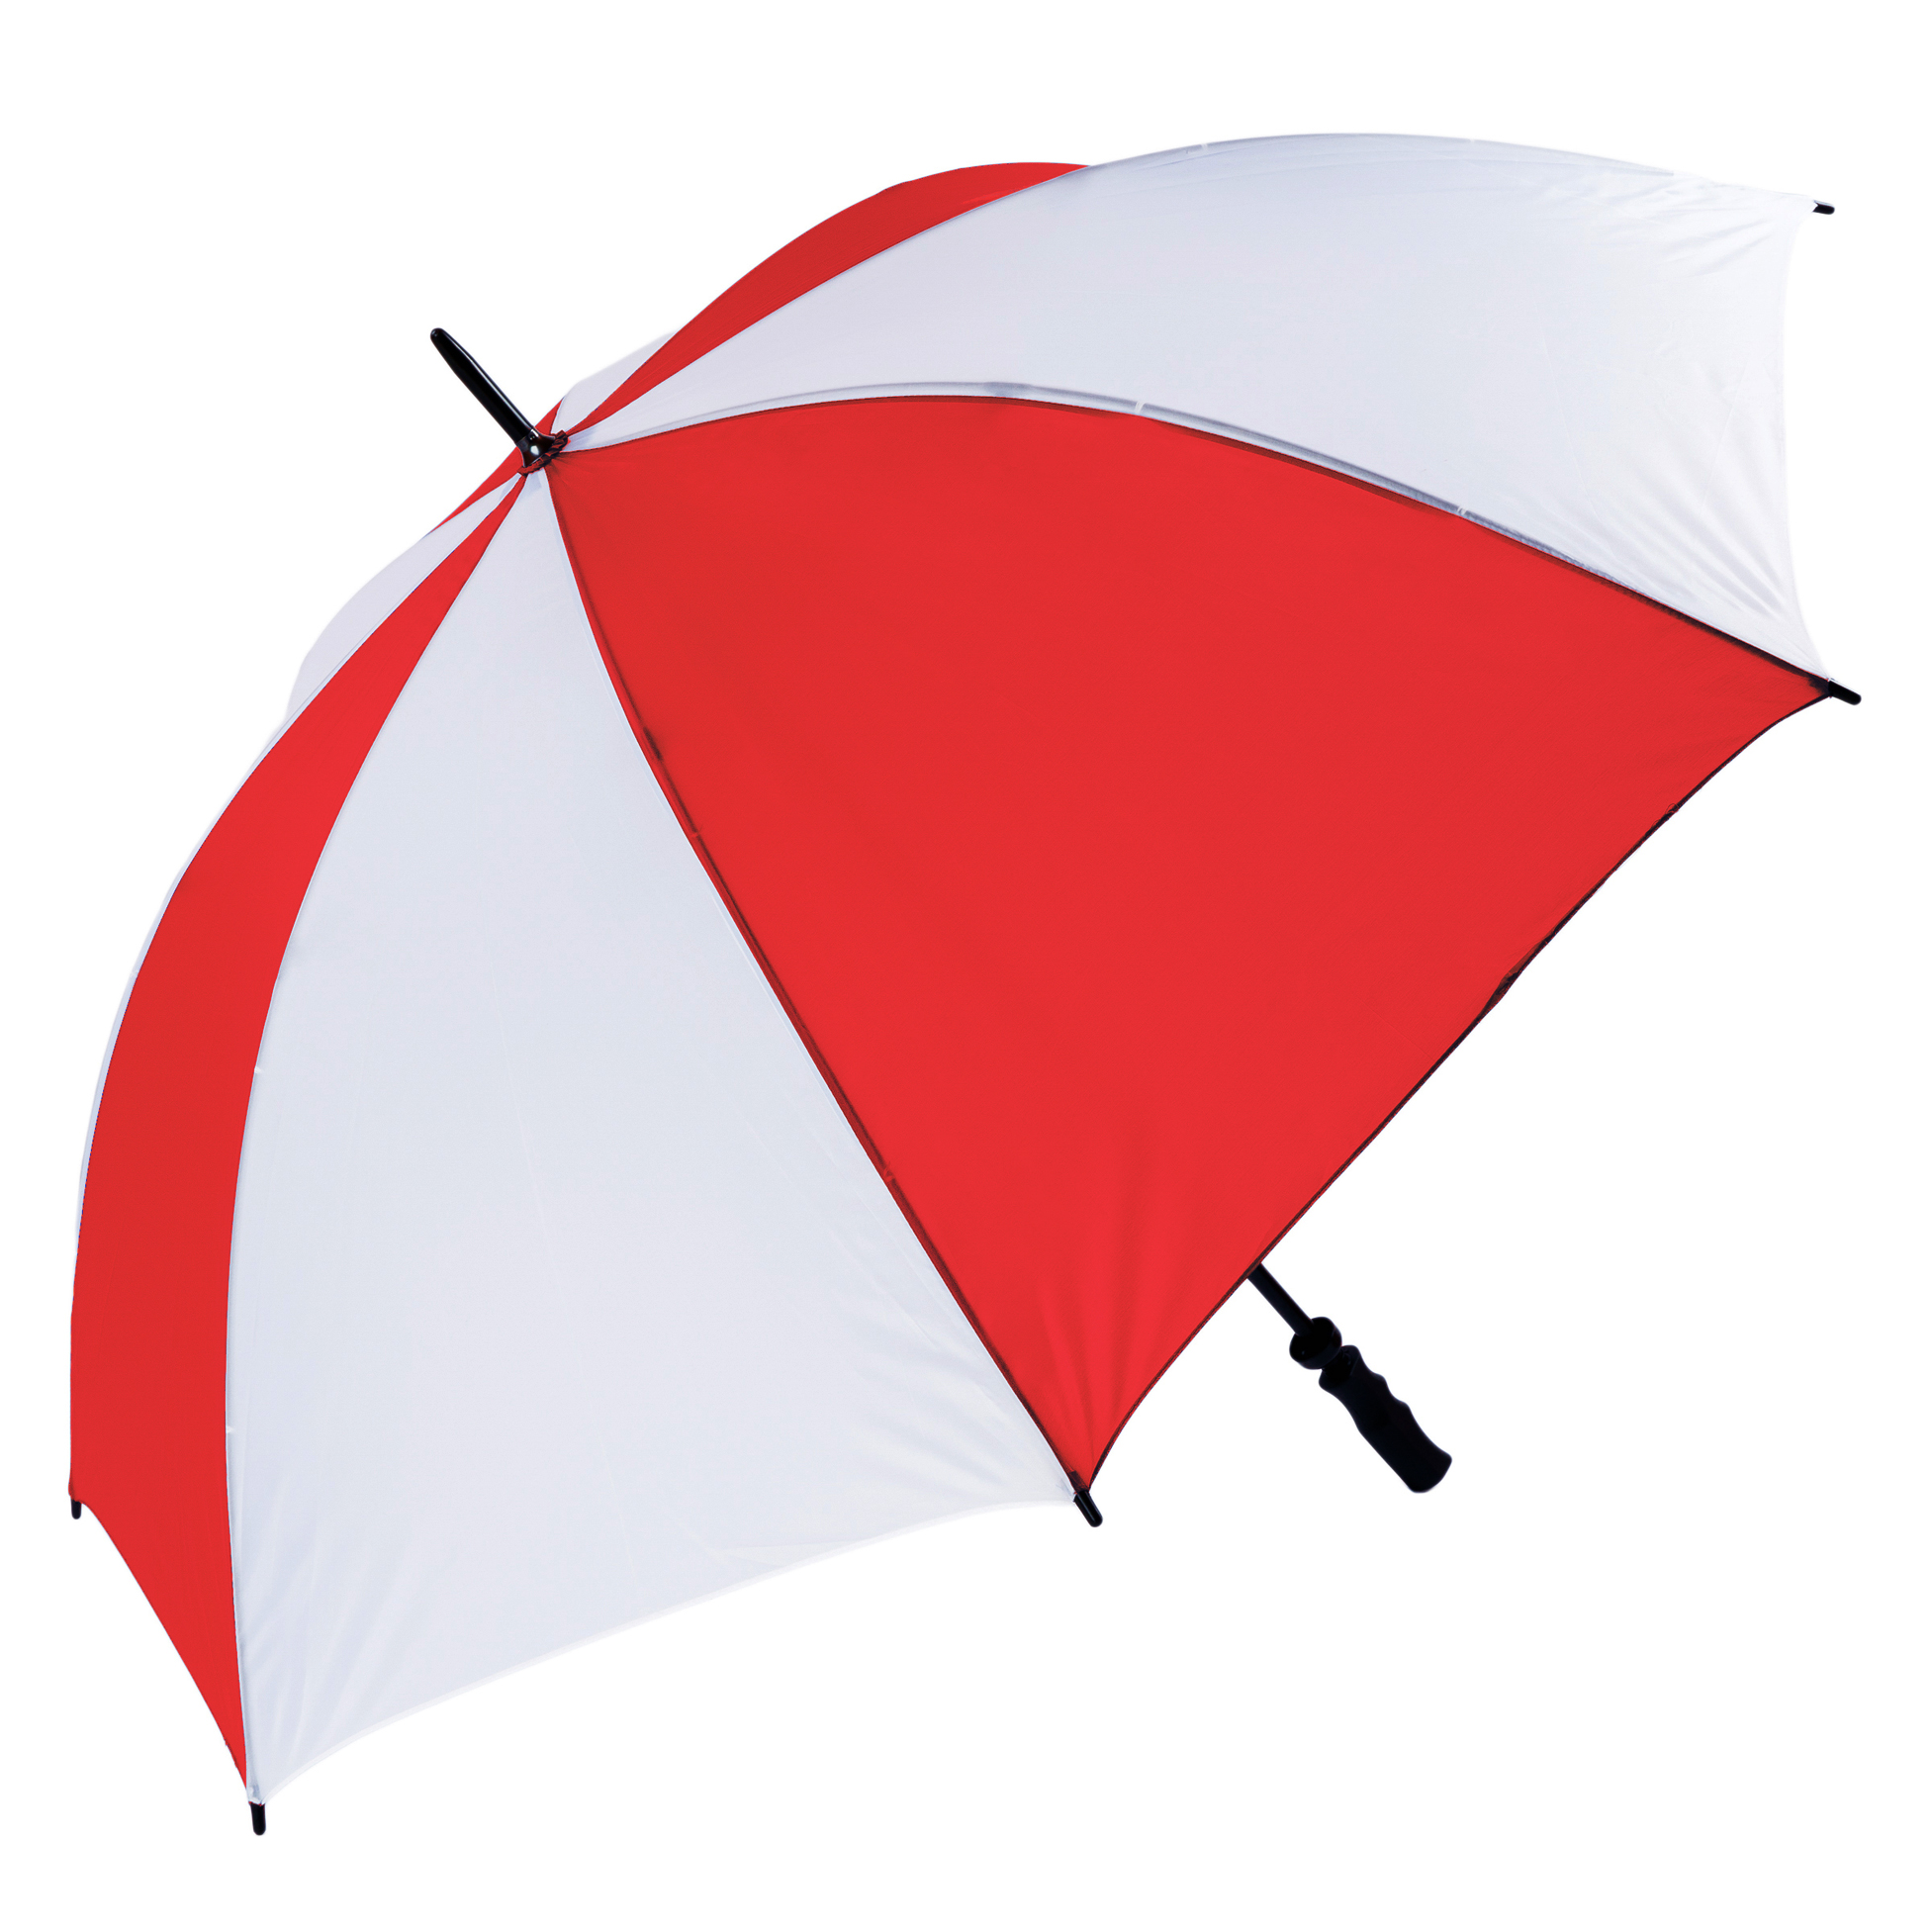 Wind Resistant Fibrelight Large Red & White Golf Umbrella (3473)